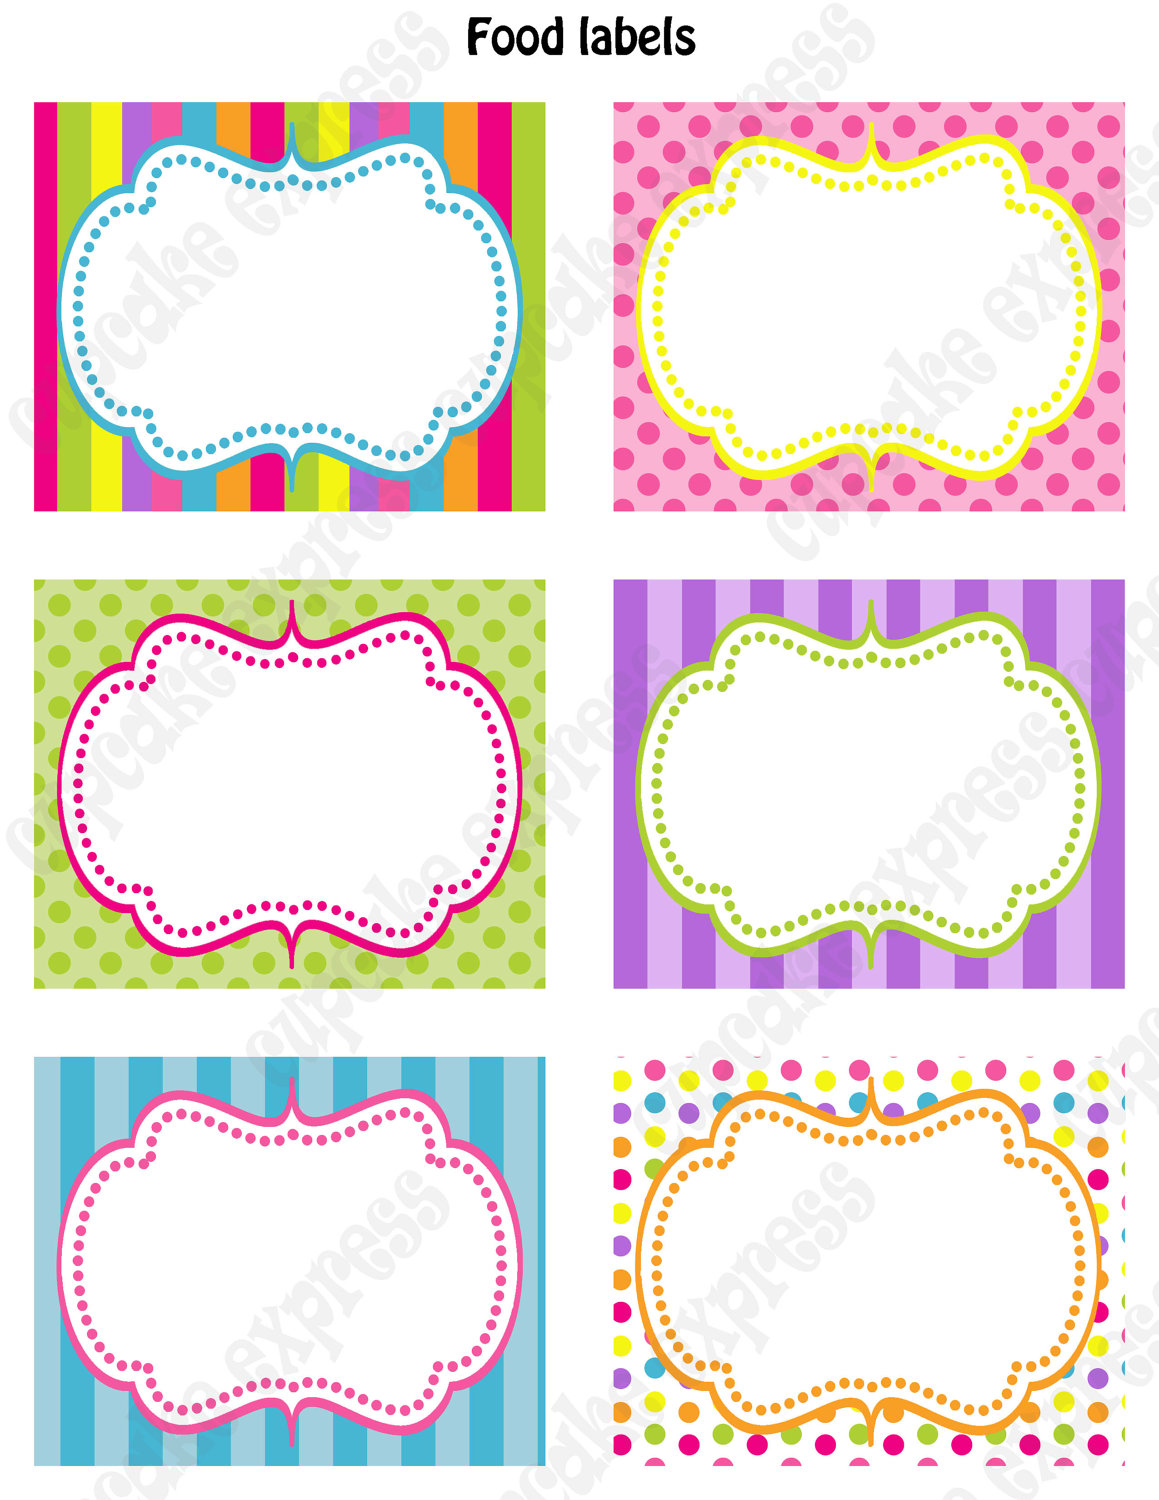 birthday tag template ; baby-shower-birthday-cake-ideas-best-of-party-themes-inspiration-page-277-of-338-outdoor-and-of-baby-shower-birthday-cake-ideas